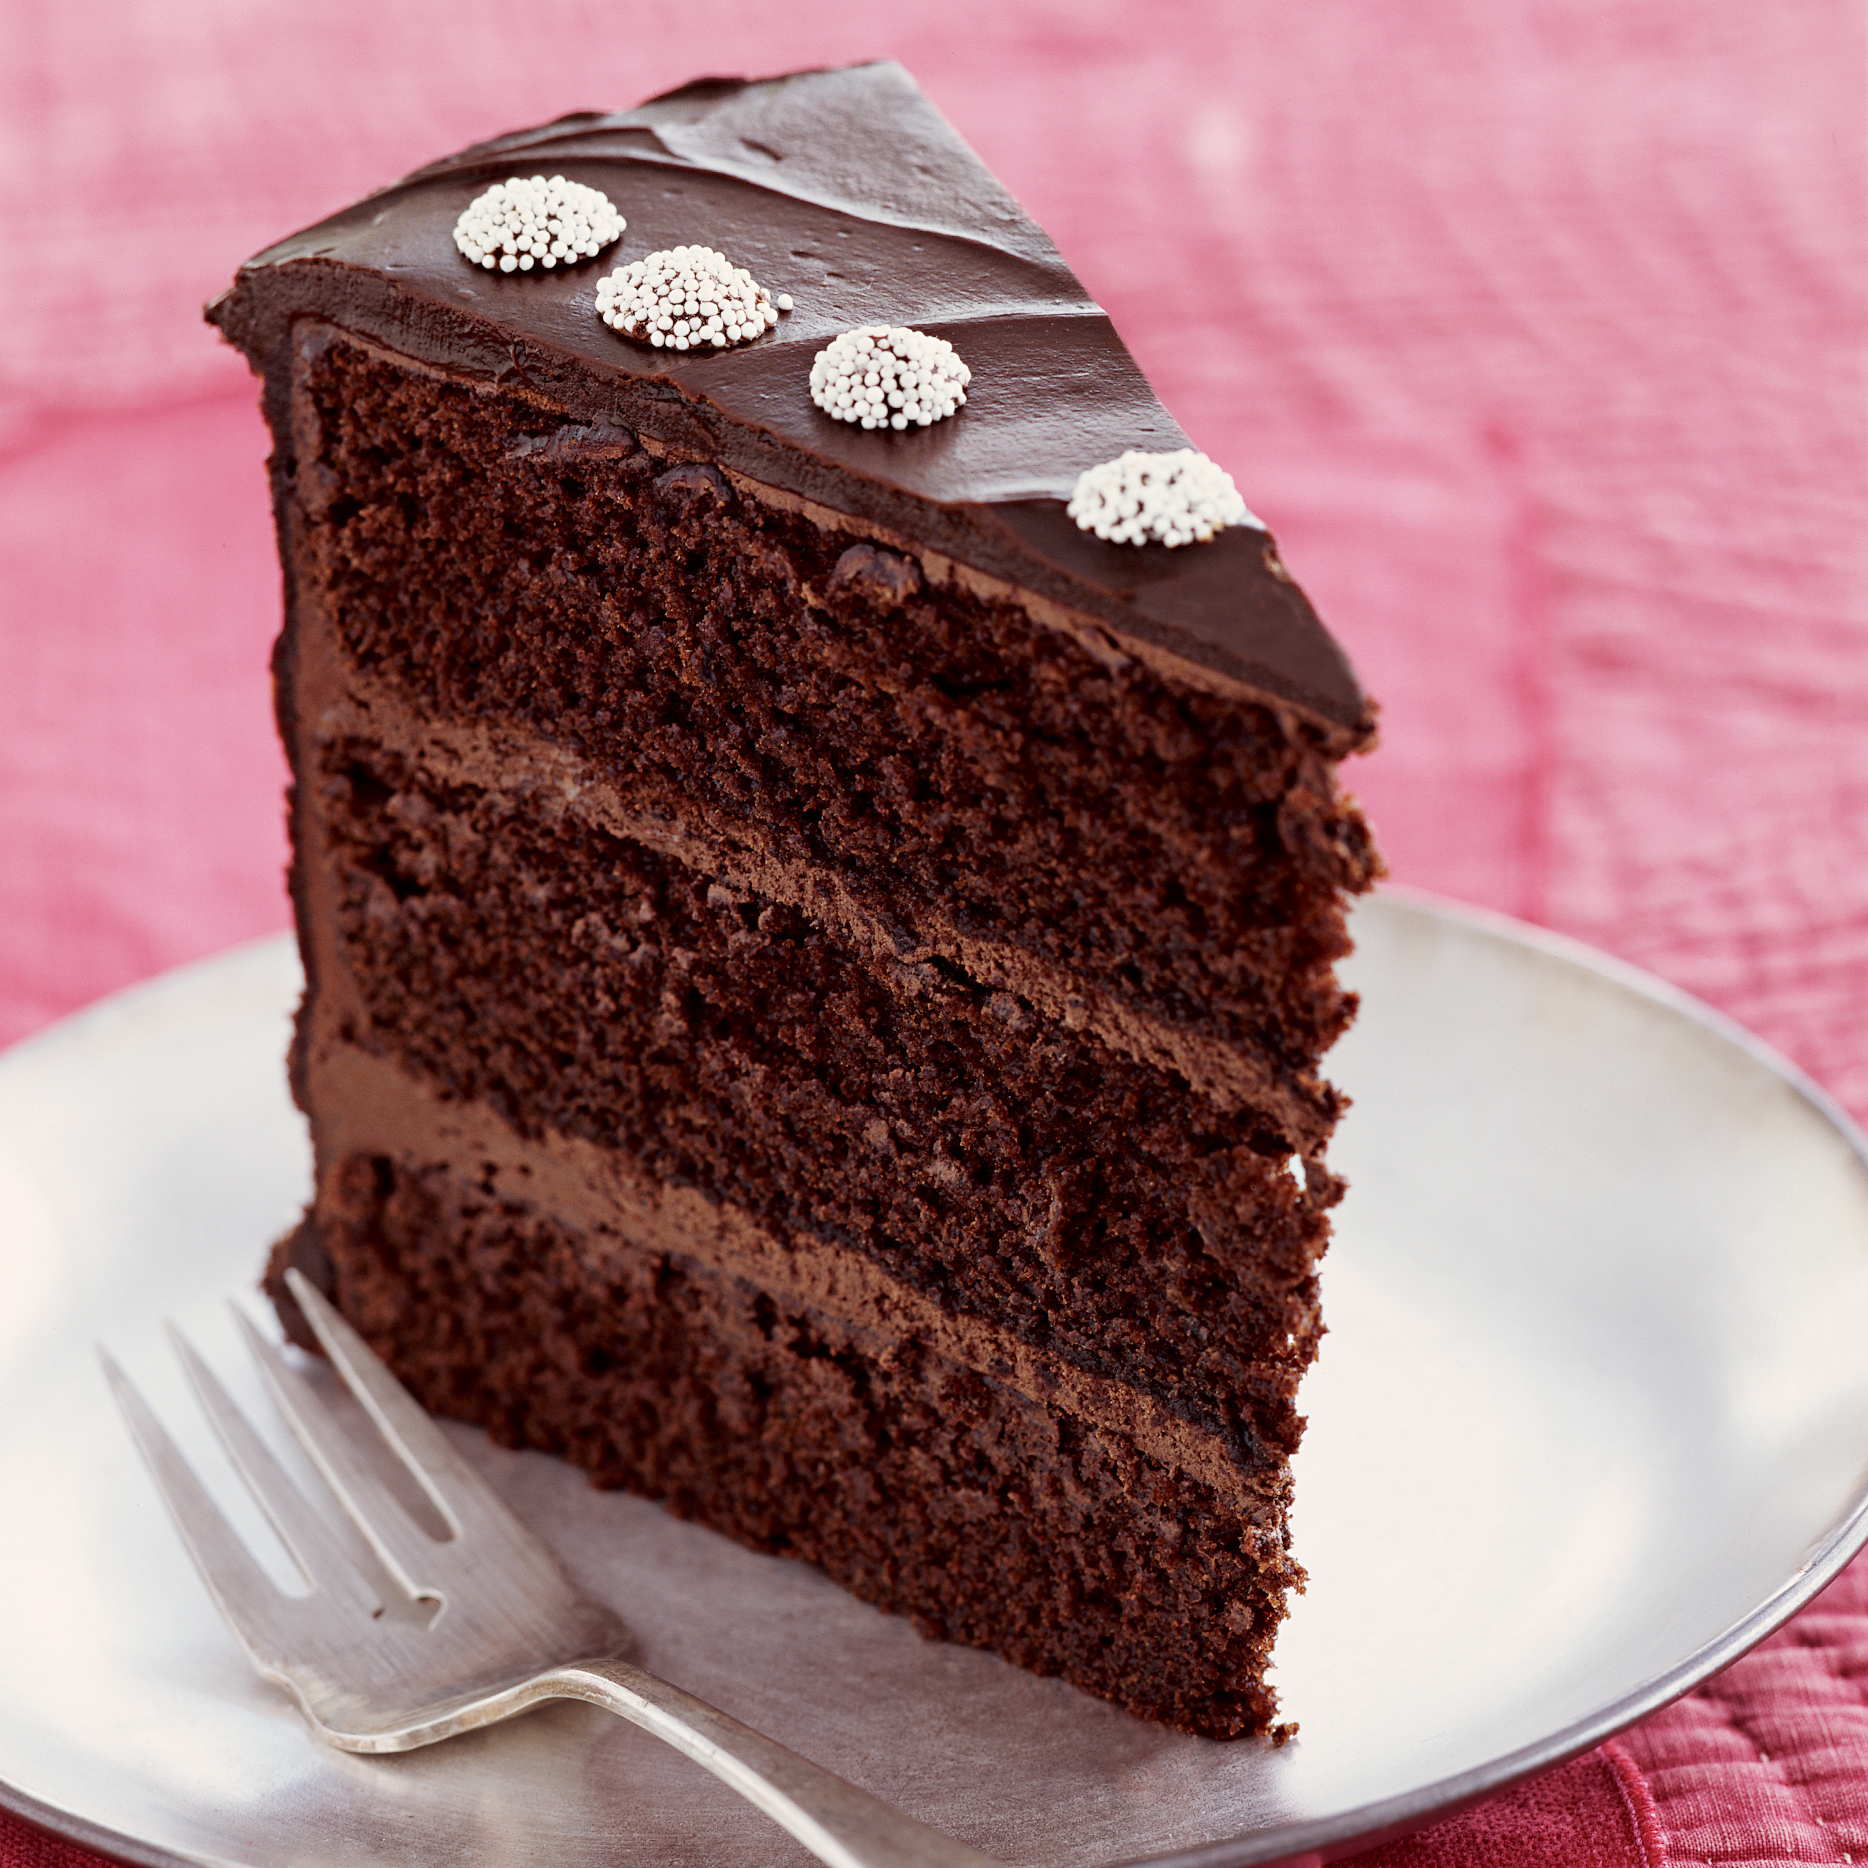 images-sys-200312-r-chocolate-layer-cake.jpg